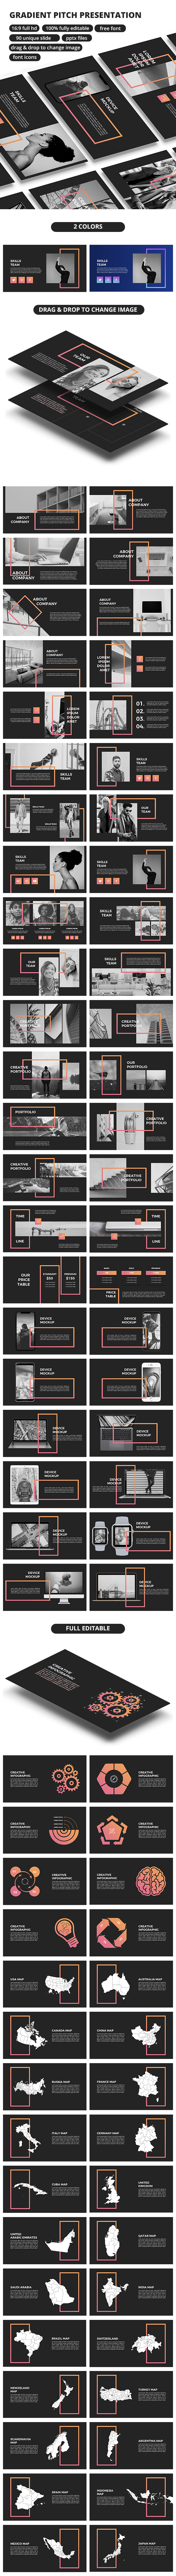 Gradient Pitch - PowerPoint Presentation - Business PowerPoint Templates